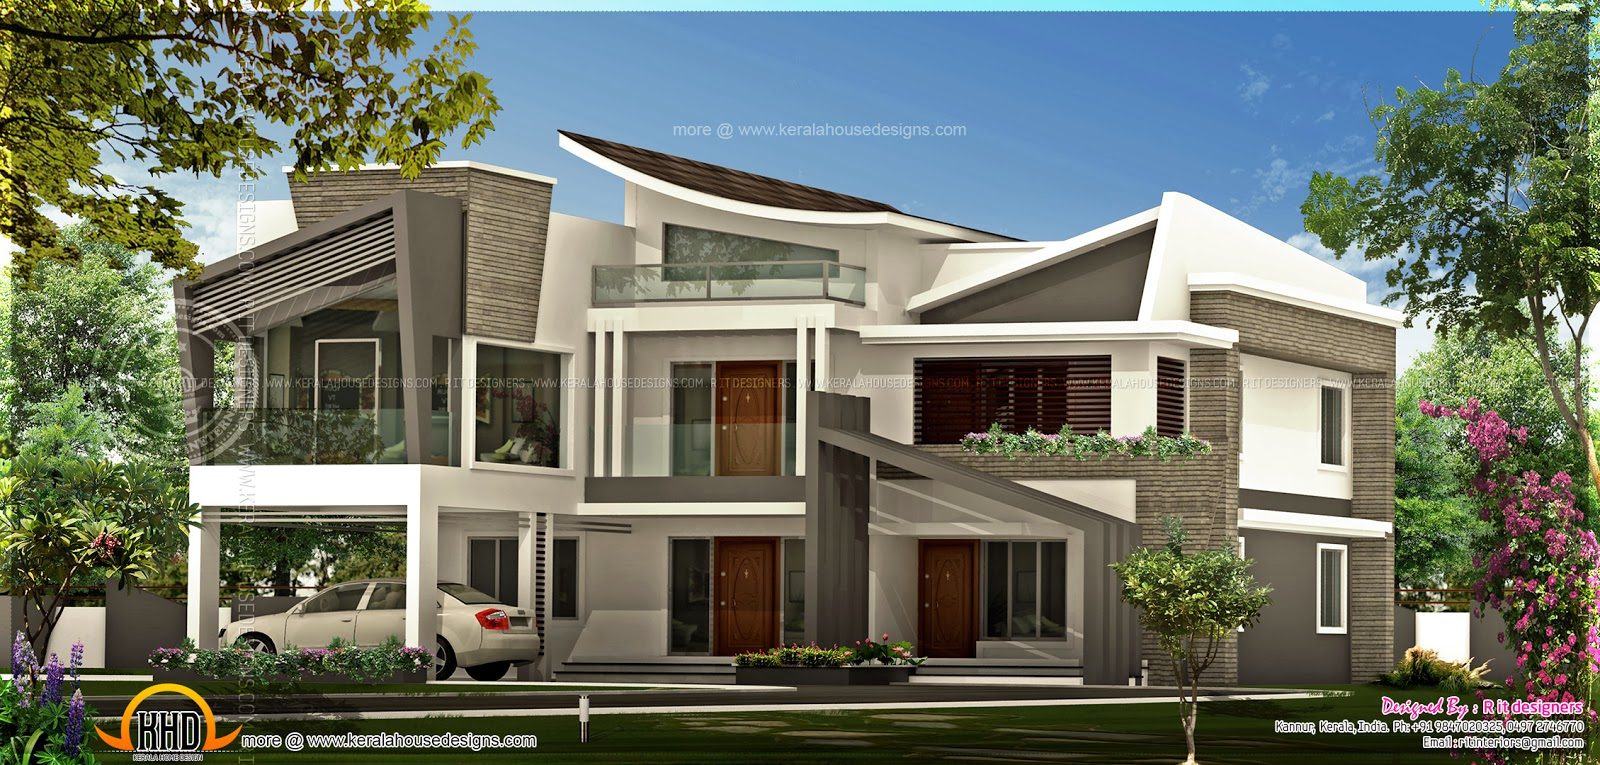 Unique contemporary luxury house kerala home design and for Modern luxury house plans and designs